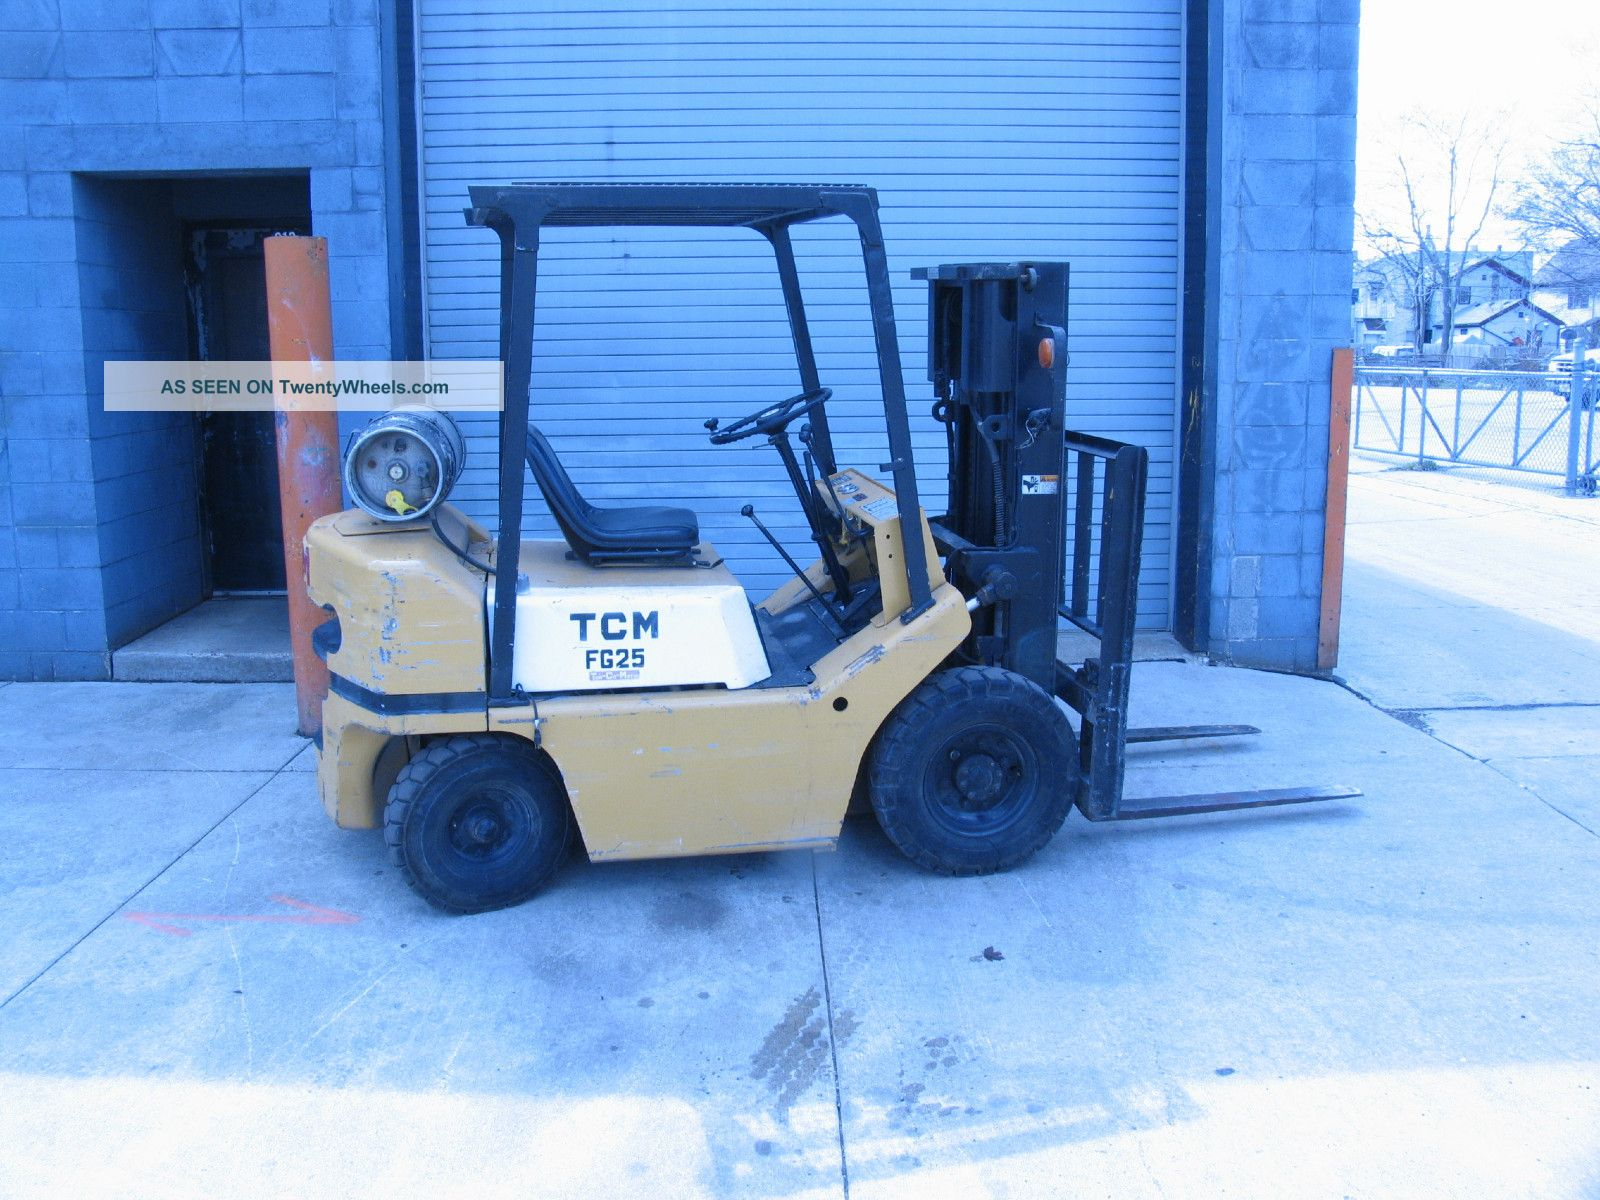 Tcm Fg25 Pneumatic Tire Forklift Triple Mast Forklifts & Other Lifts photo